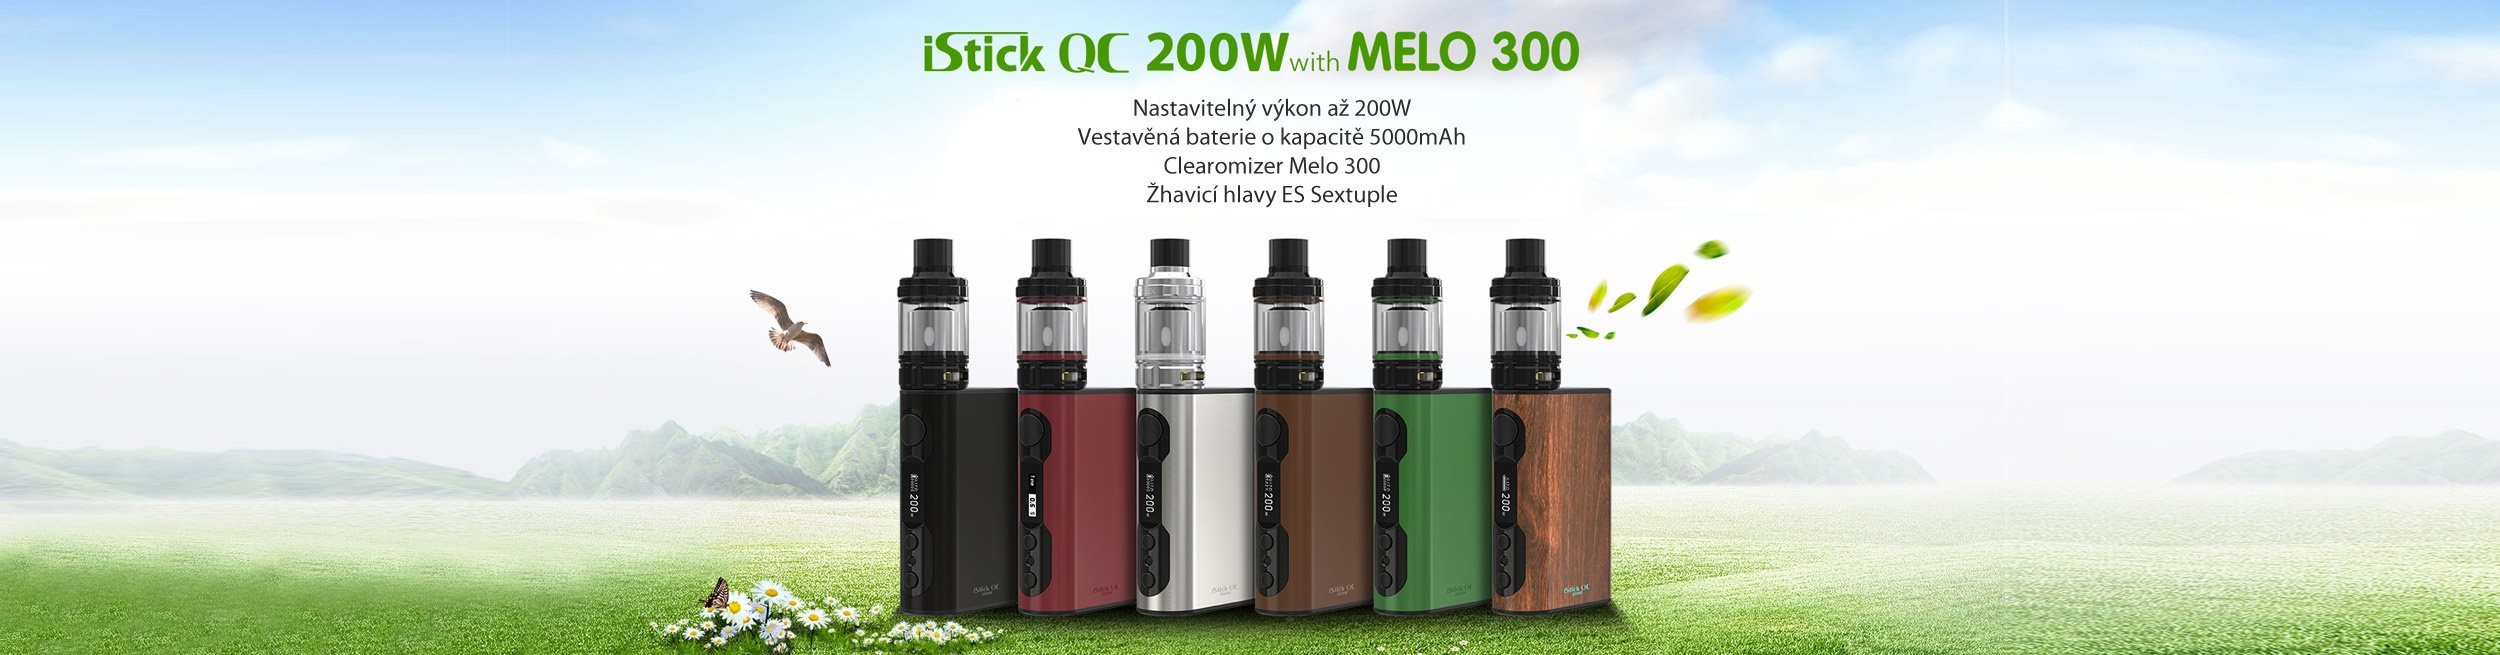 ismoka-eleaf-istick-qc-tc-200w-grip-5000mah-full-kit-s-melo-300